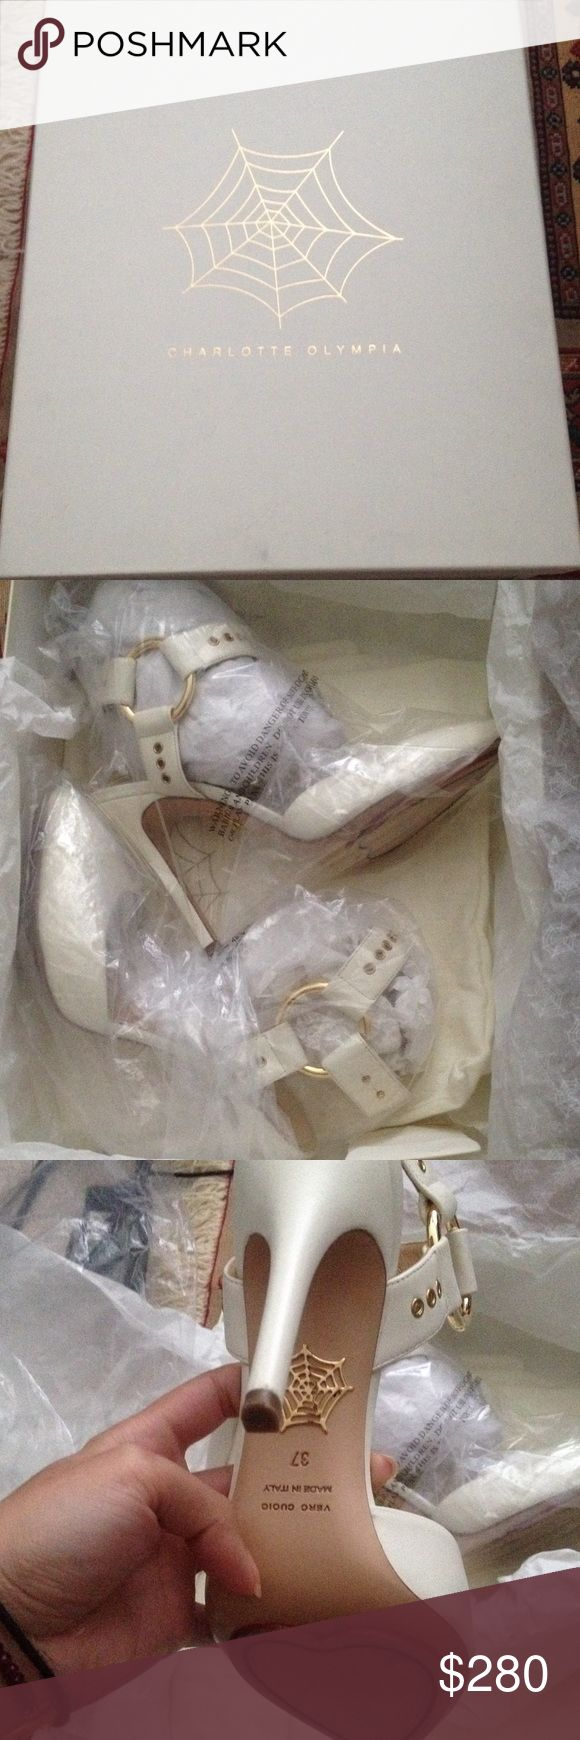 Charlotte Olympia  shoes Luxury Italian designer , hand made leather shoes , withe , size :37 , made in Italy , with original box and shoes bag, gently used Charlotte Olympia Shoes Heels